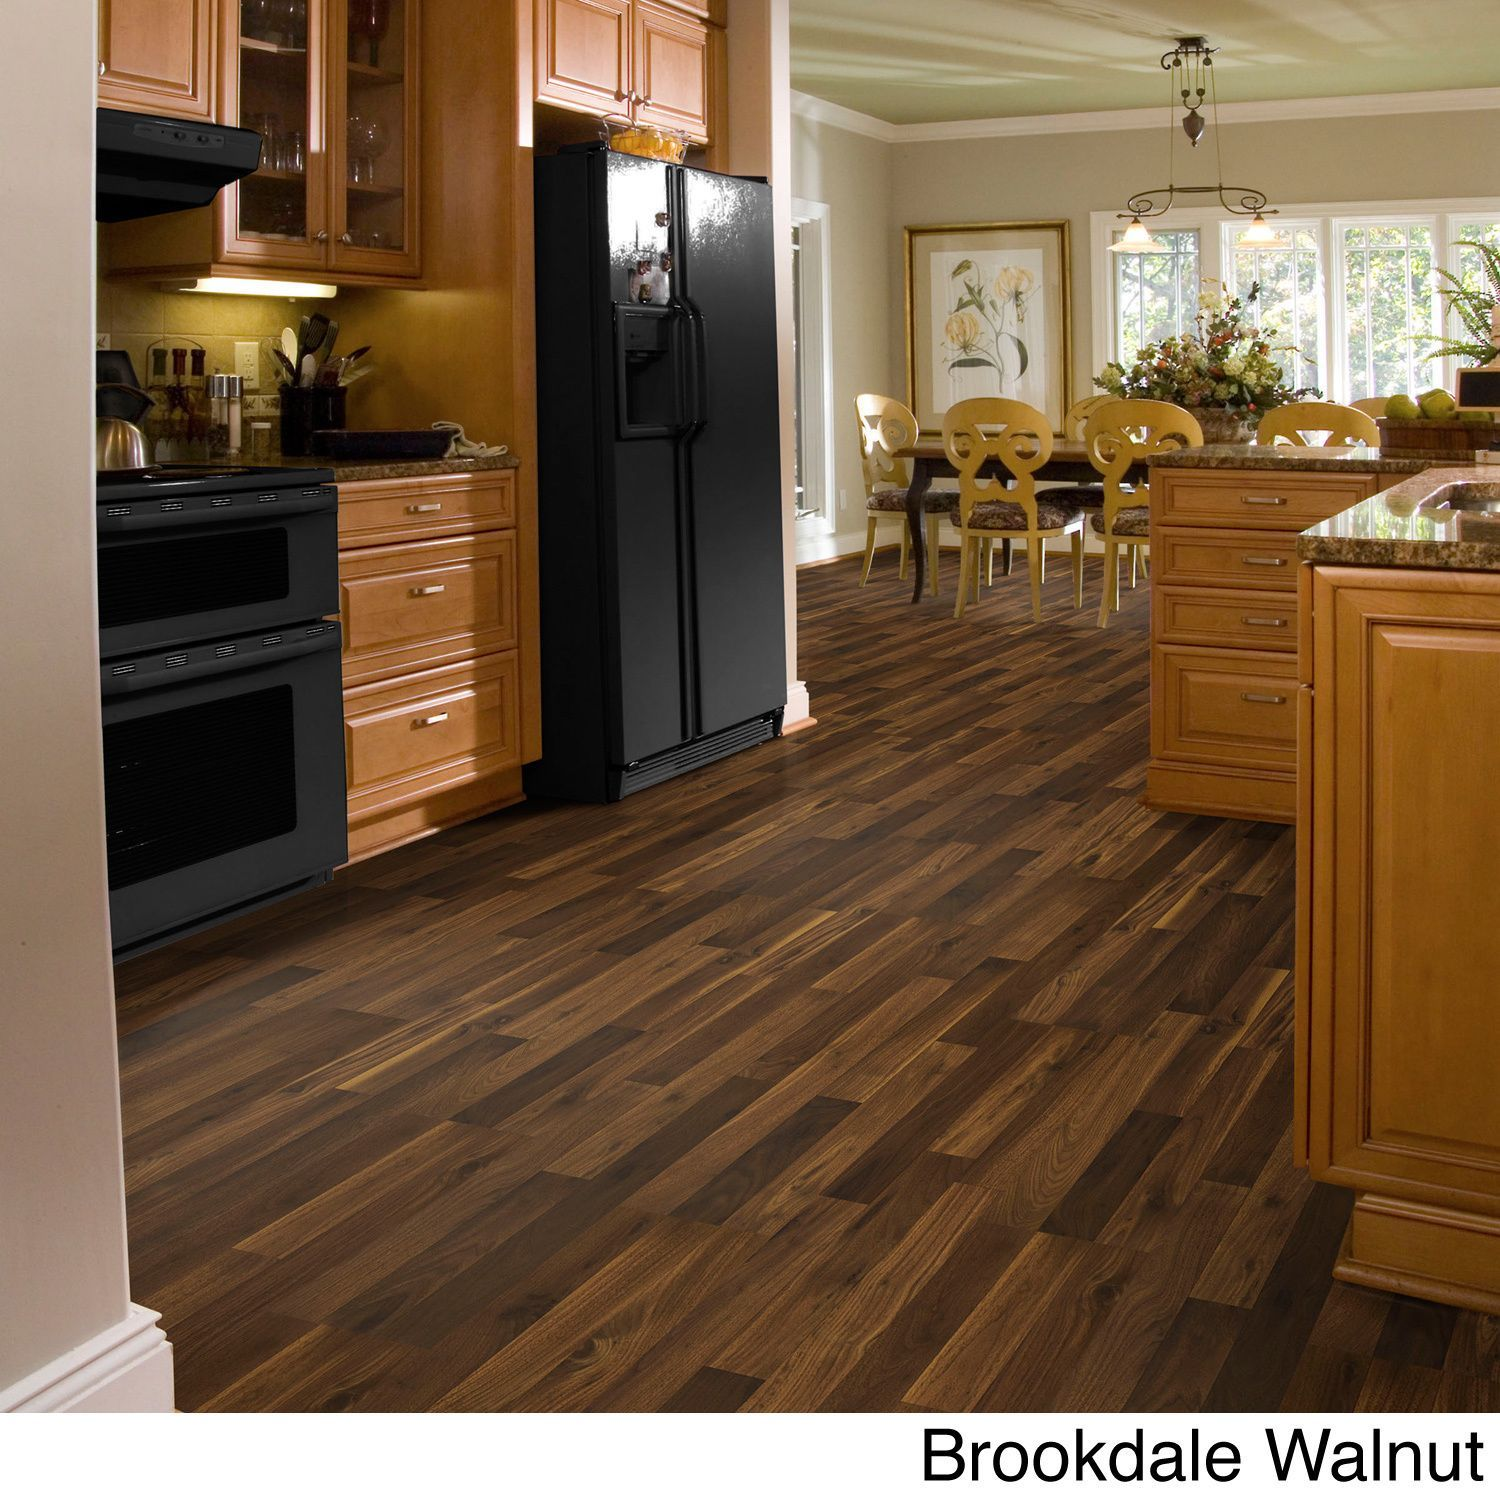 walnut kitchen floor shaw industries woodford crimson laminate flooring 26 4 3344